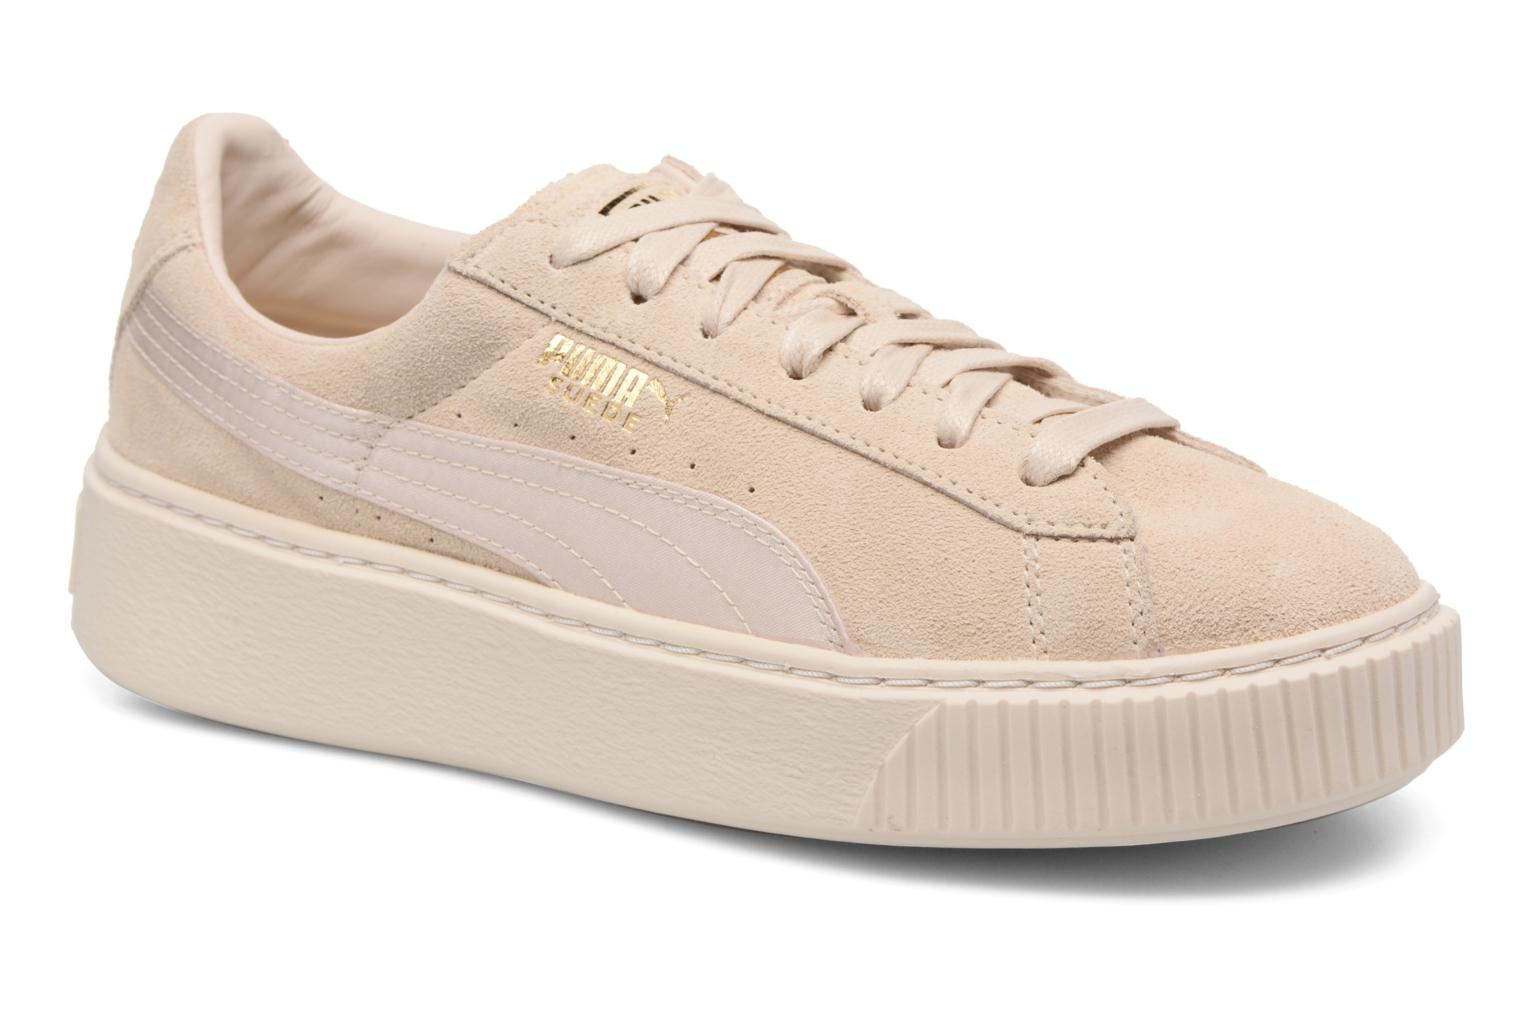 WNS SUEDE PLATF SATIN Pink Tint-Whisper White-Puma Team Gold